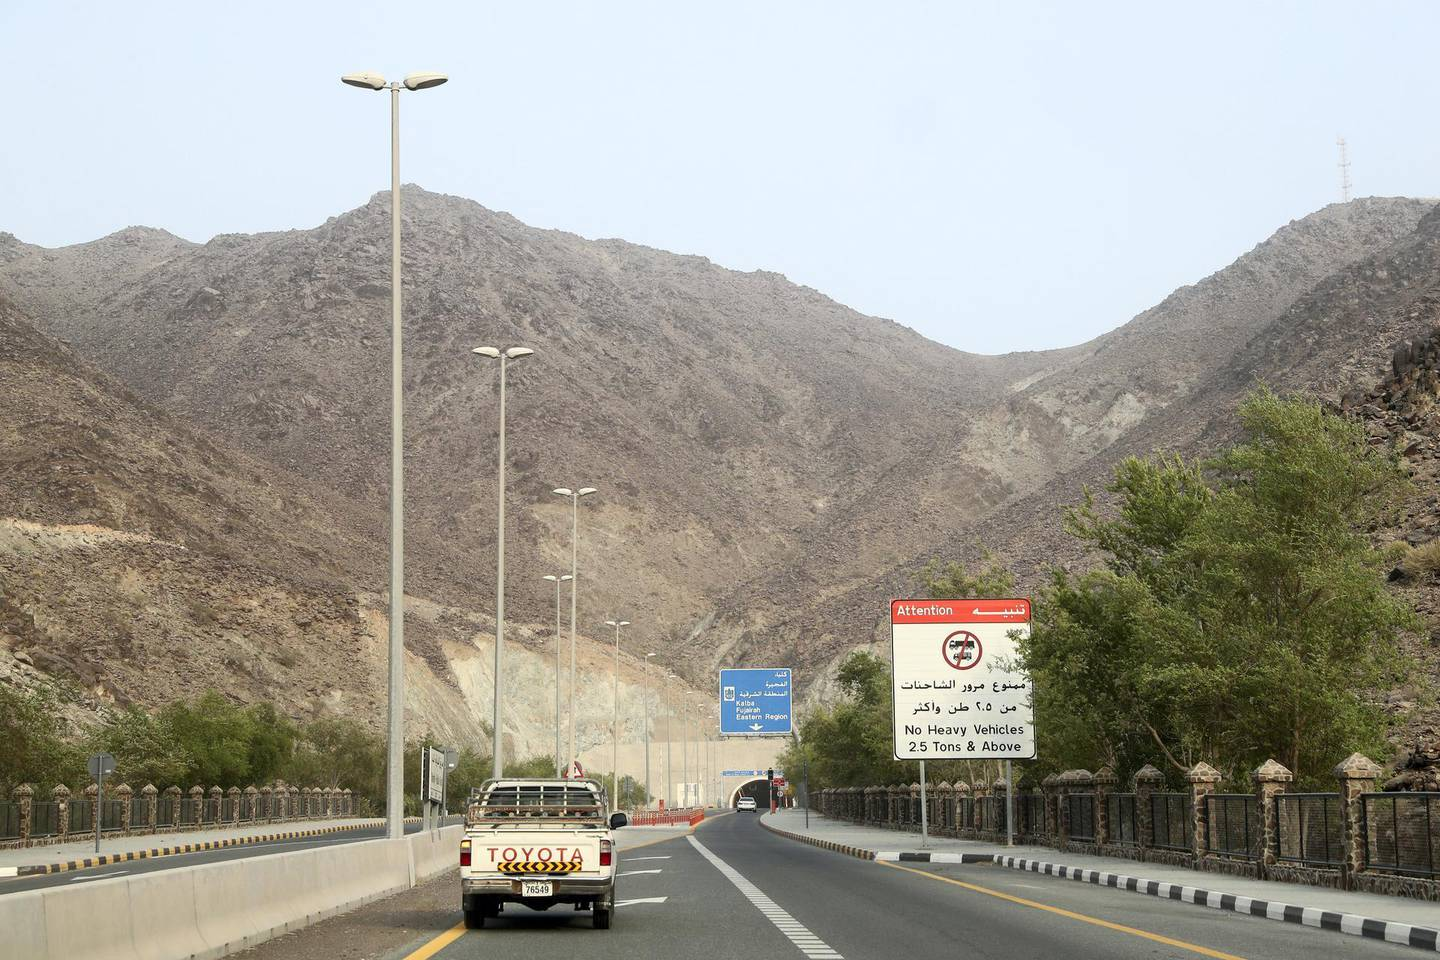 Sharjah, United Arab Emirates - September 24, 2018: Neighbourhood watch series. Wadi Al Helo town also known as sweet valley. Residents talking about the town, archaeological site and the valley. Monday, September 24th, 2018 at Wadi Al Helo, Sharjah. Chris Whiteoak / The National